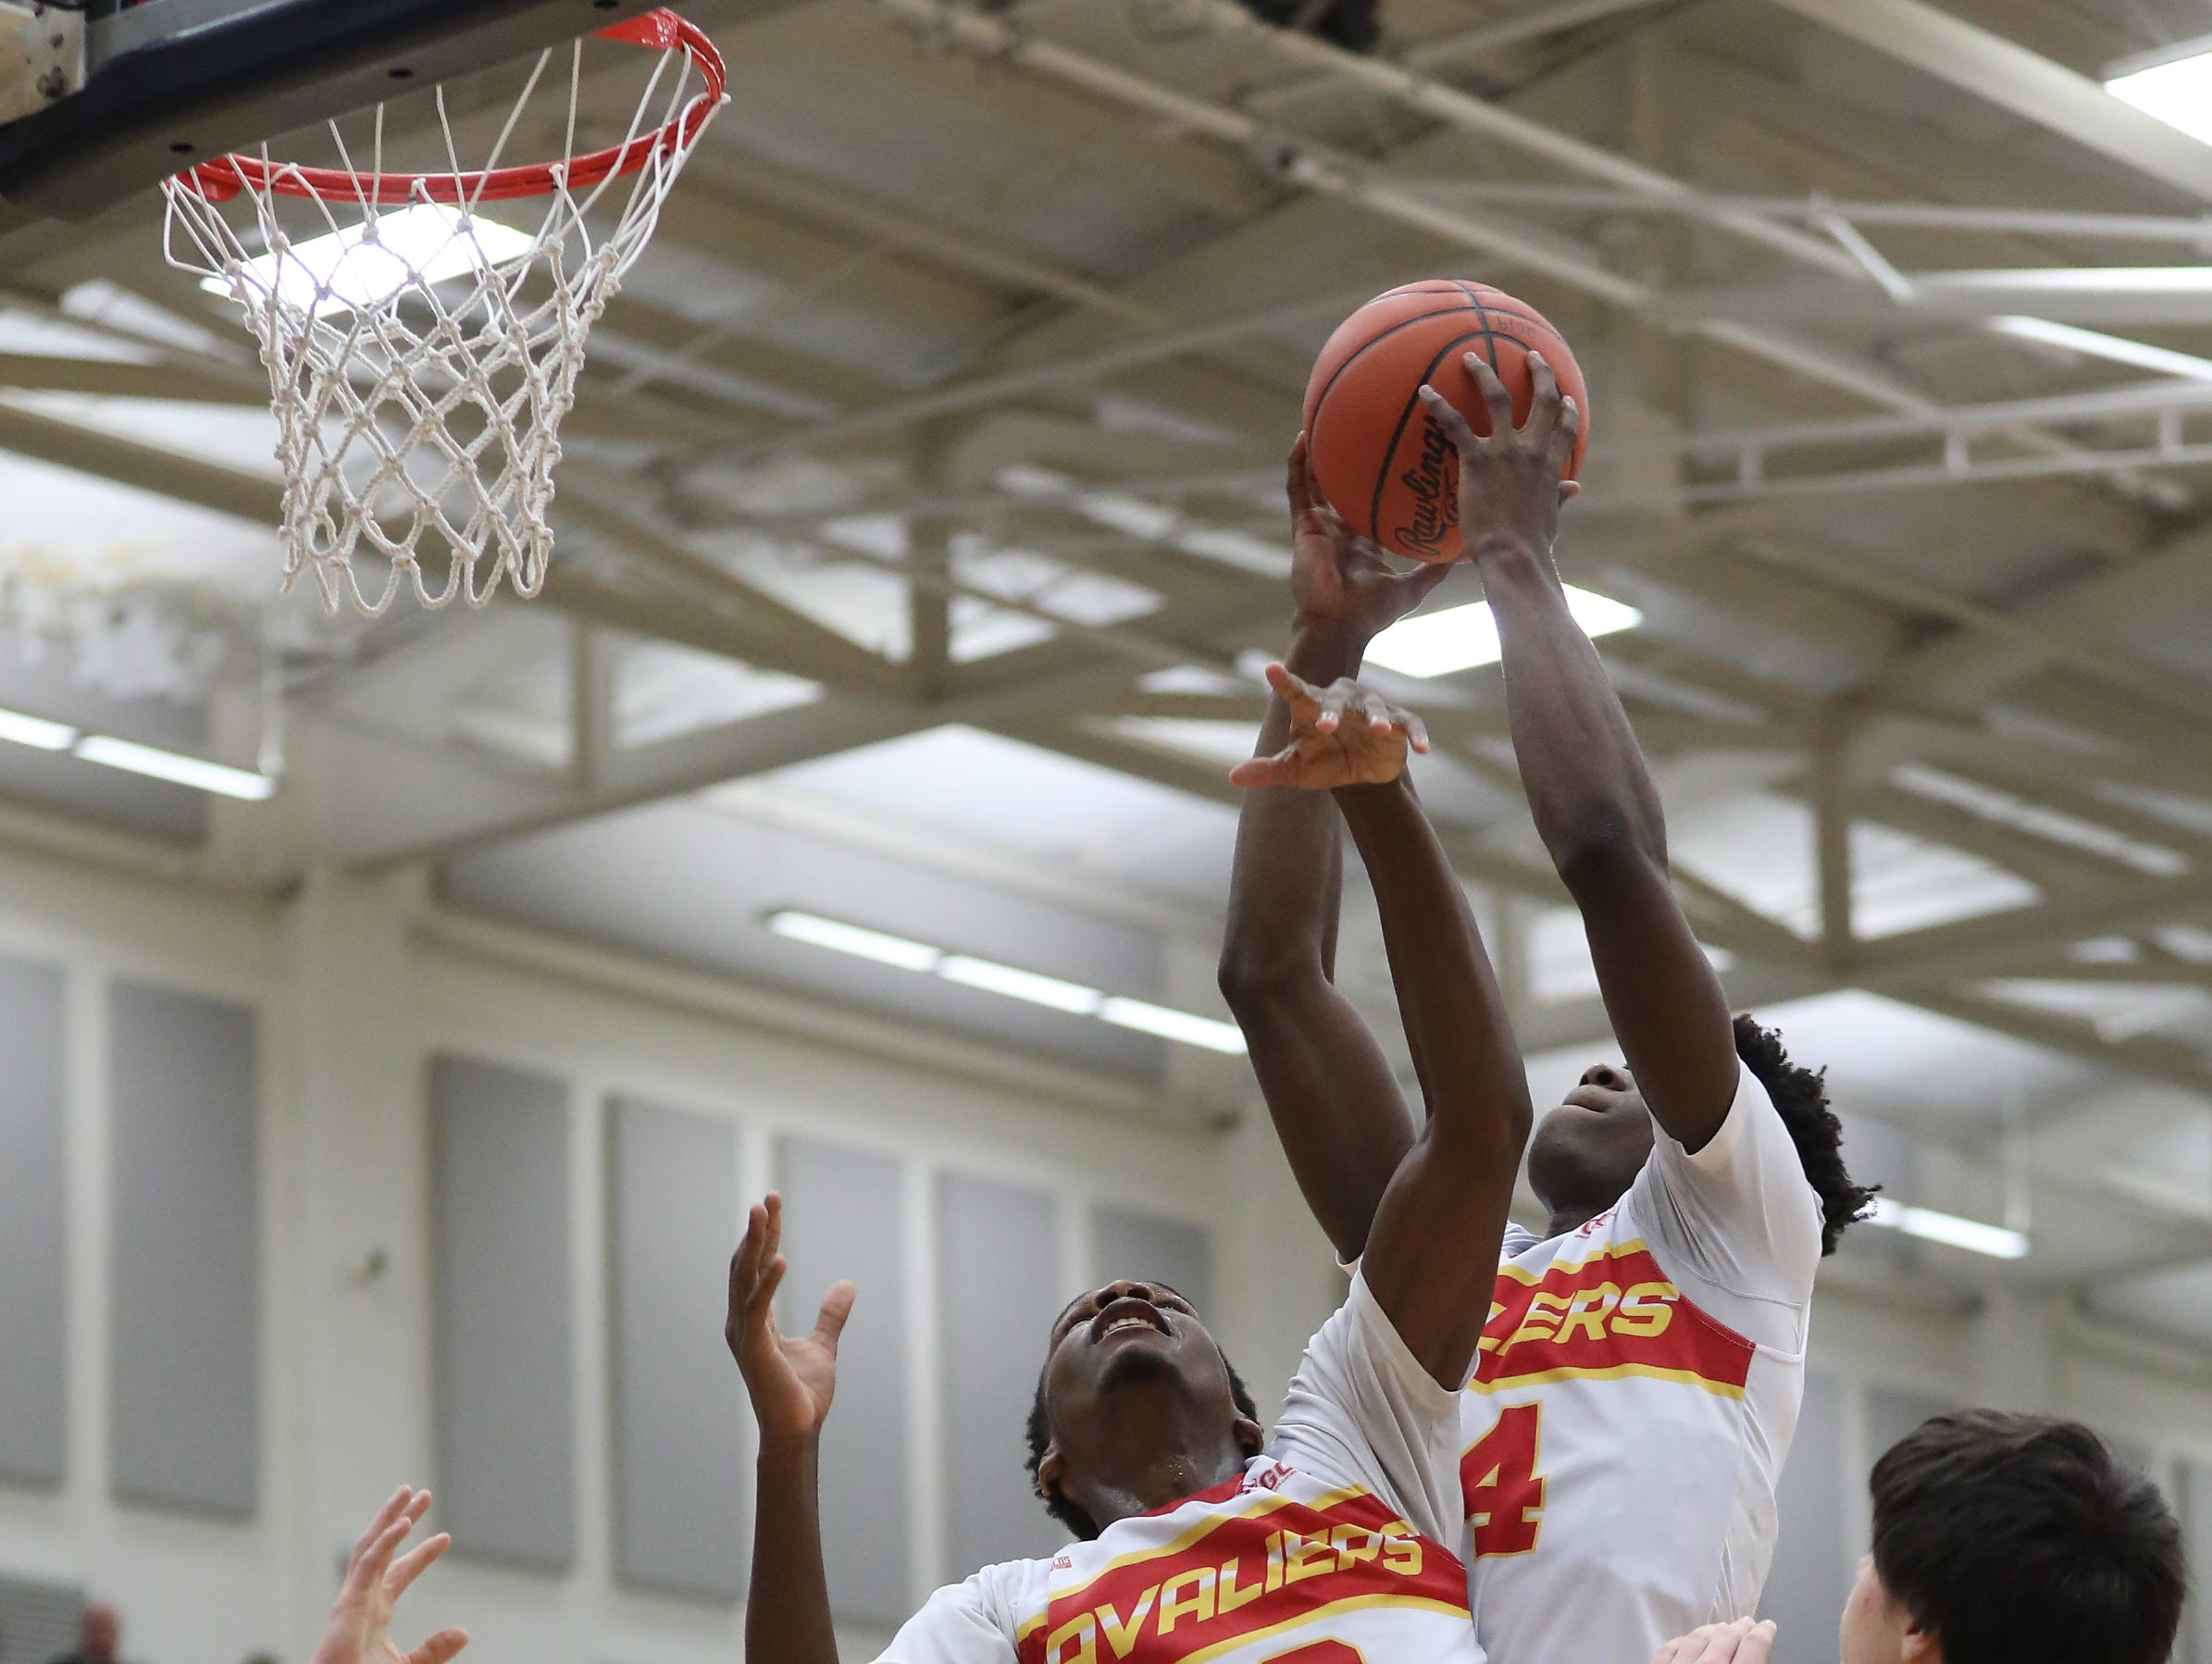 Purcell Marian players Bryan Warah and Alex Dotson  battle for a rebound during the Cavaliers' regional semi-final win against Versailles Wednesday, March 13, 2019.